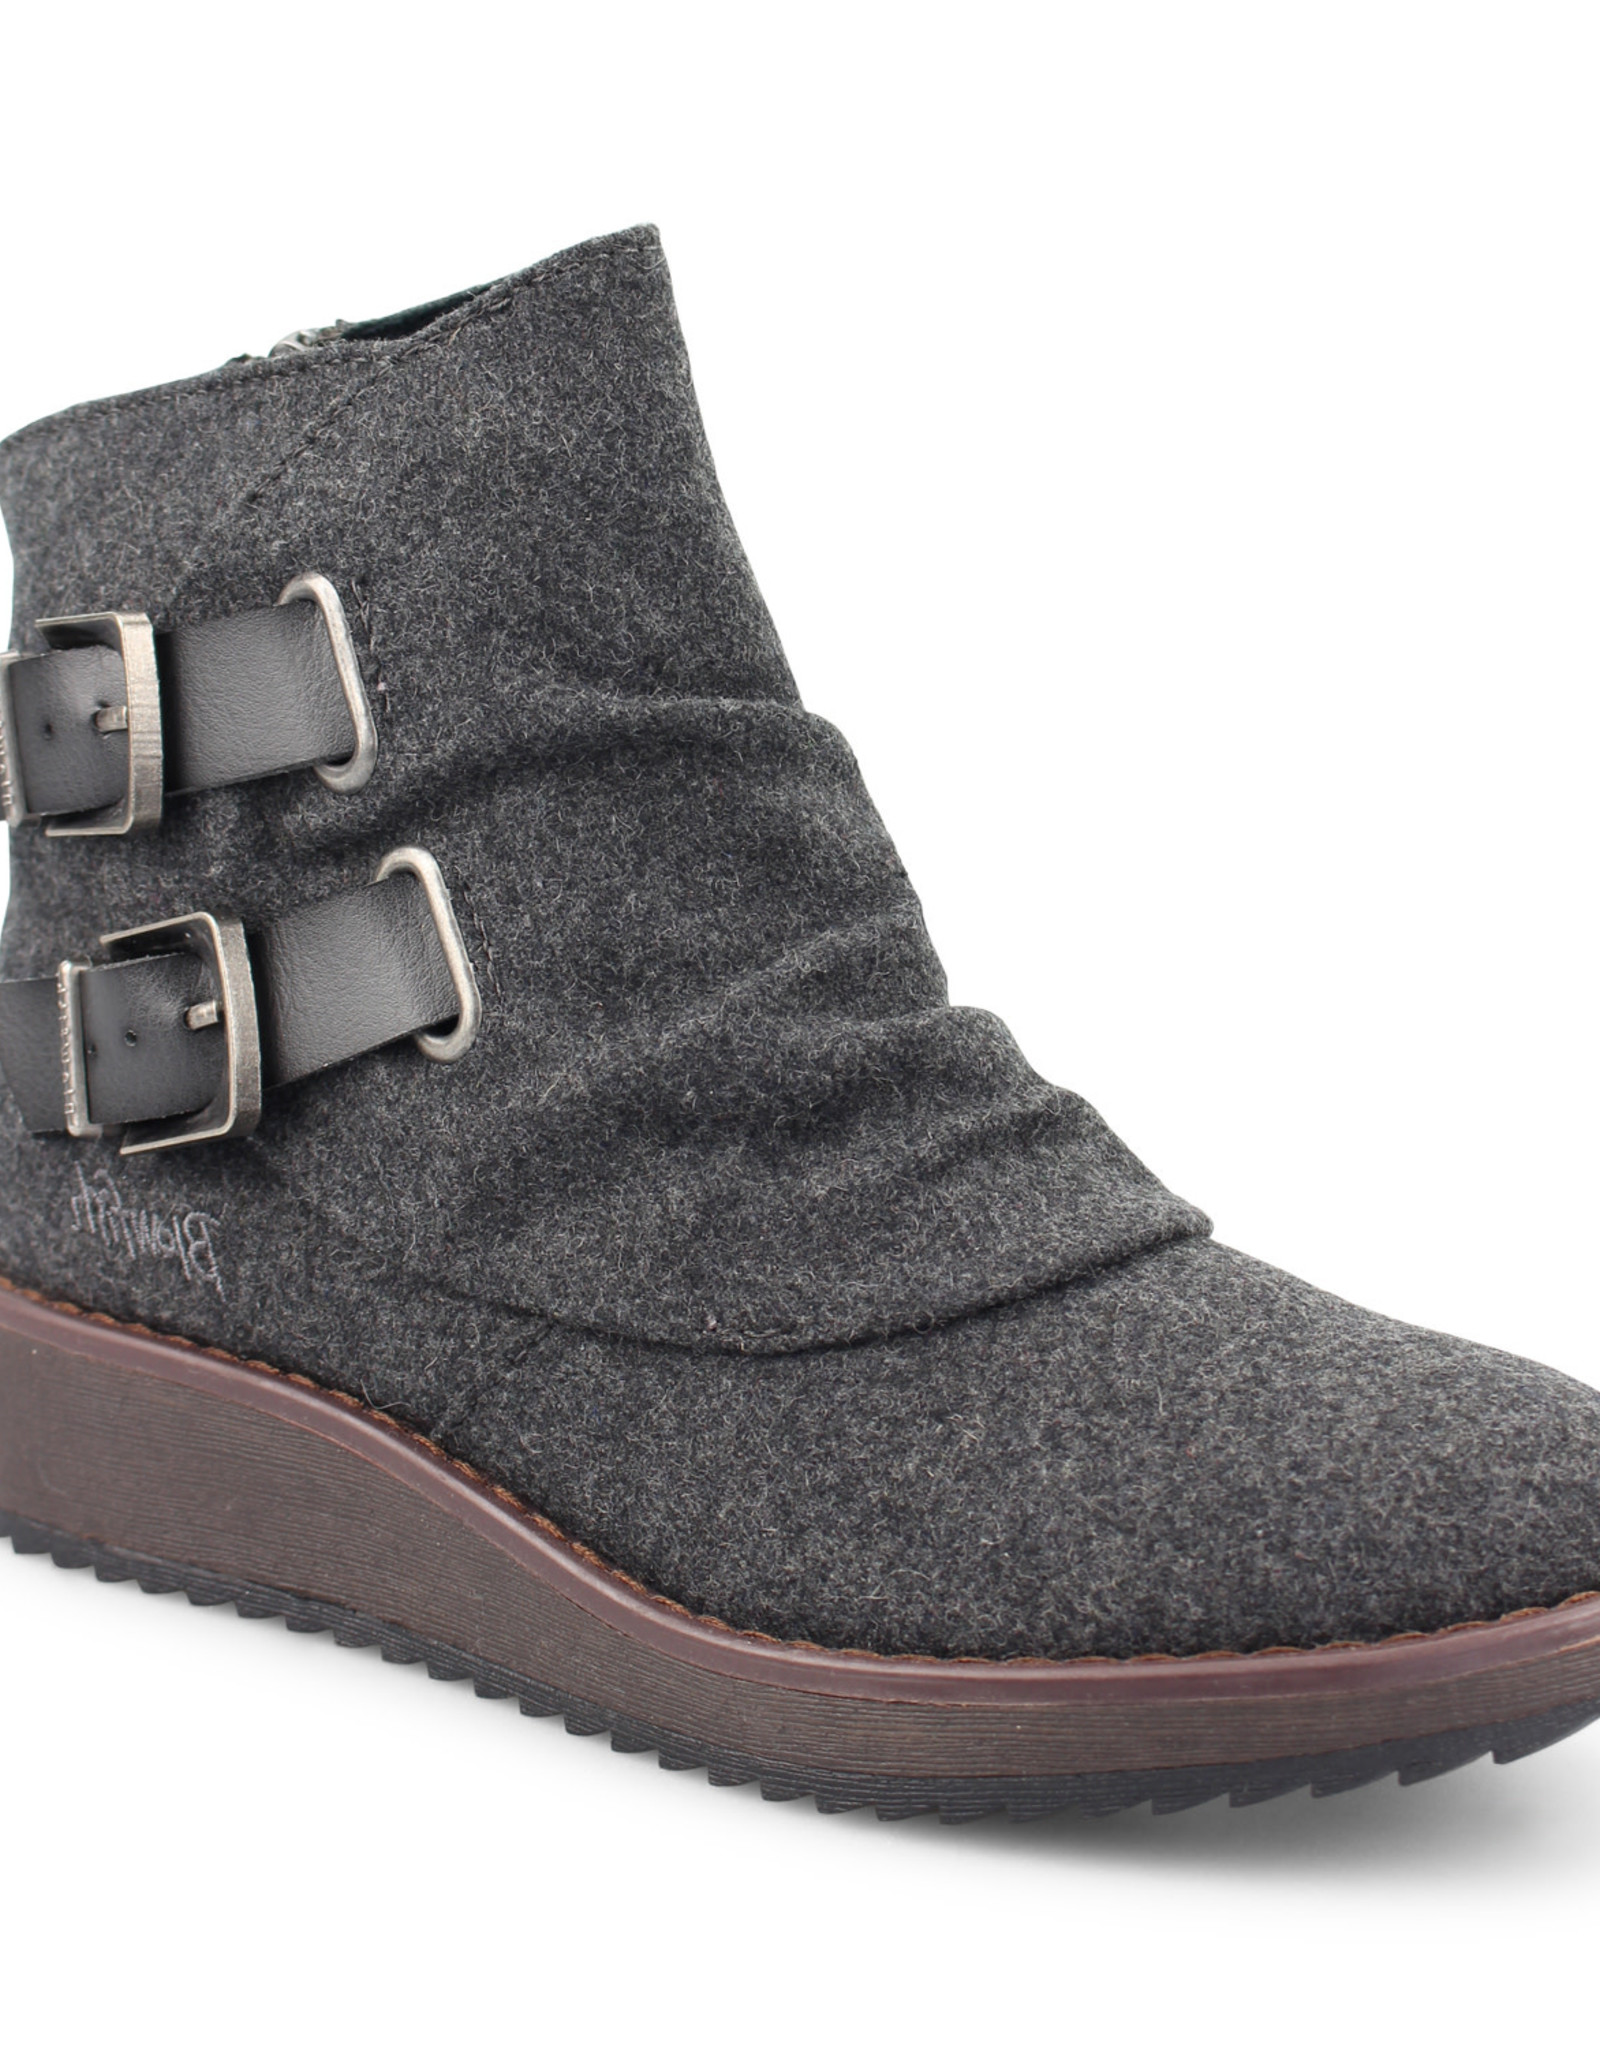 TLC Blowfish Cocoa Bootie in Grey 2Tone Flannel/Charcoal